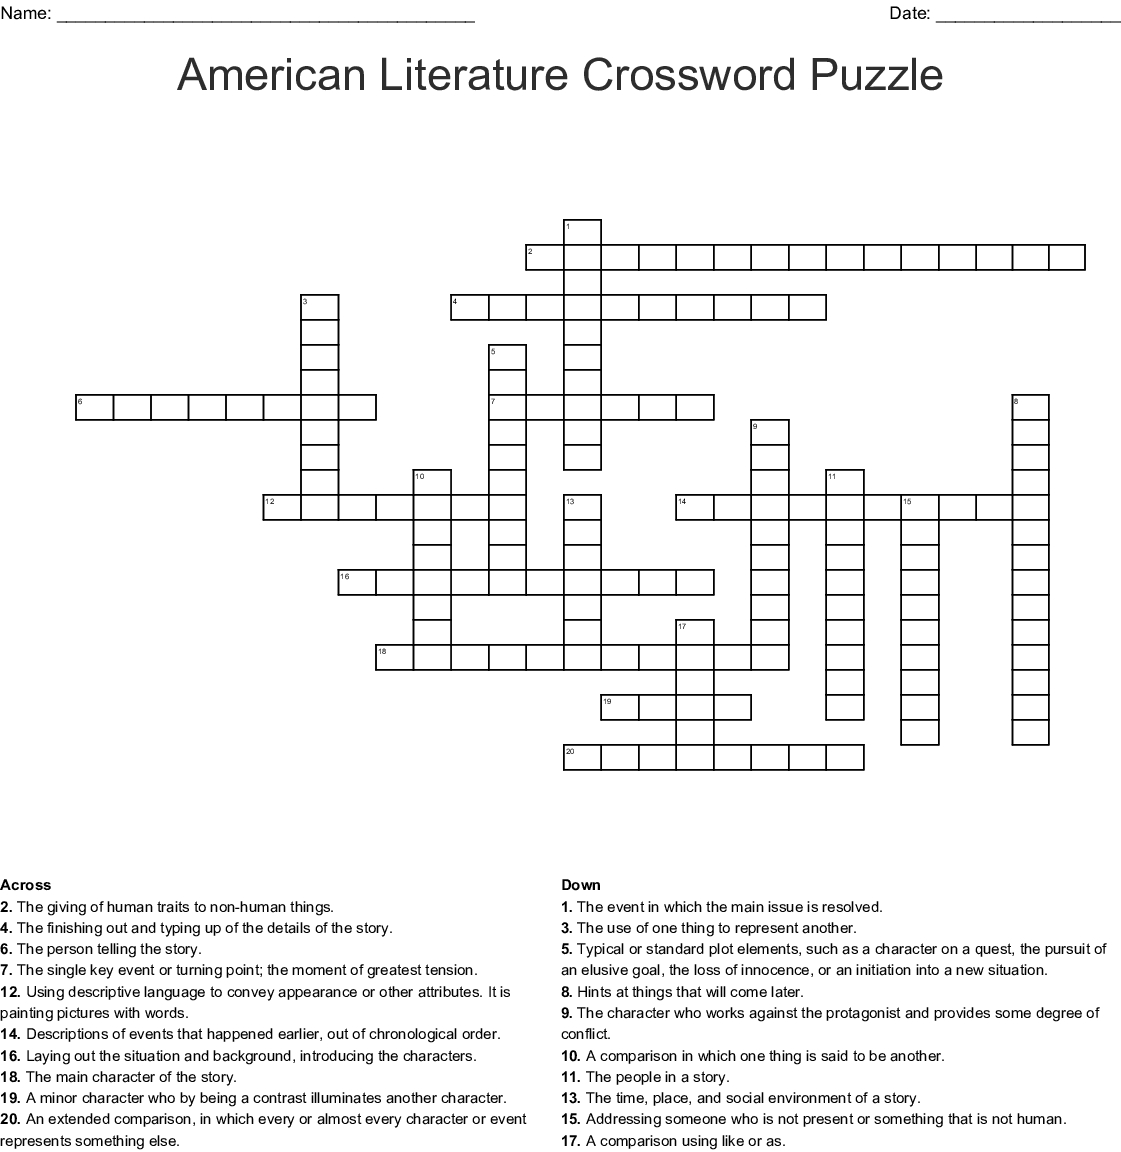 American Literature Crossword Puzzle Crossword - Wordmint - Printable Literature Crossword Puzzles